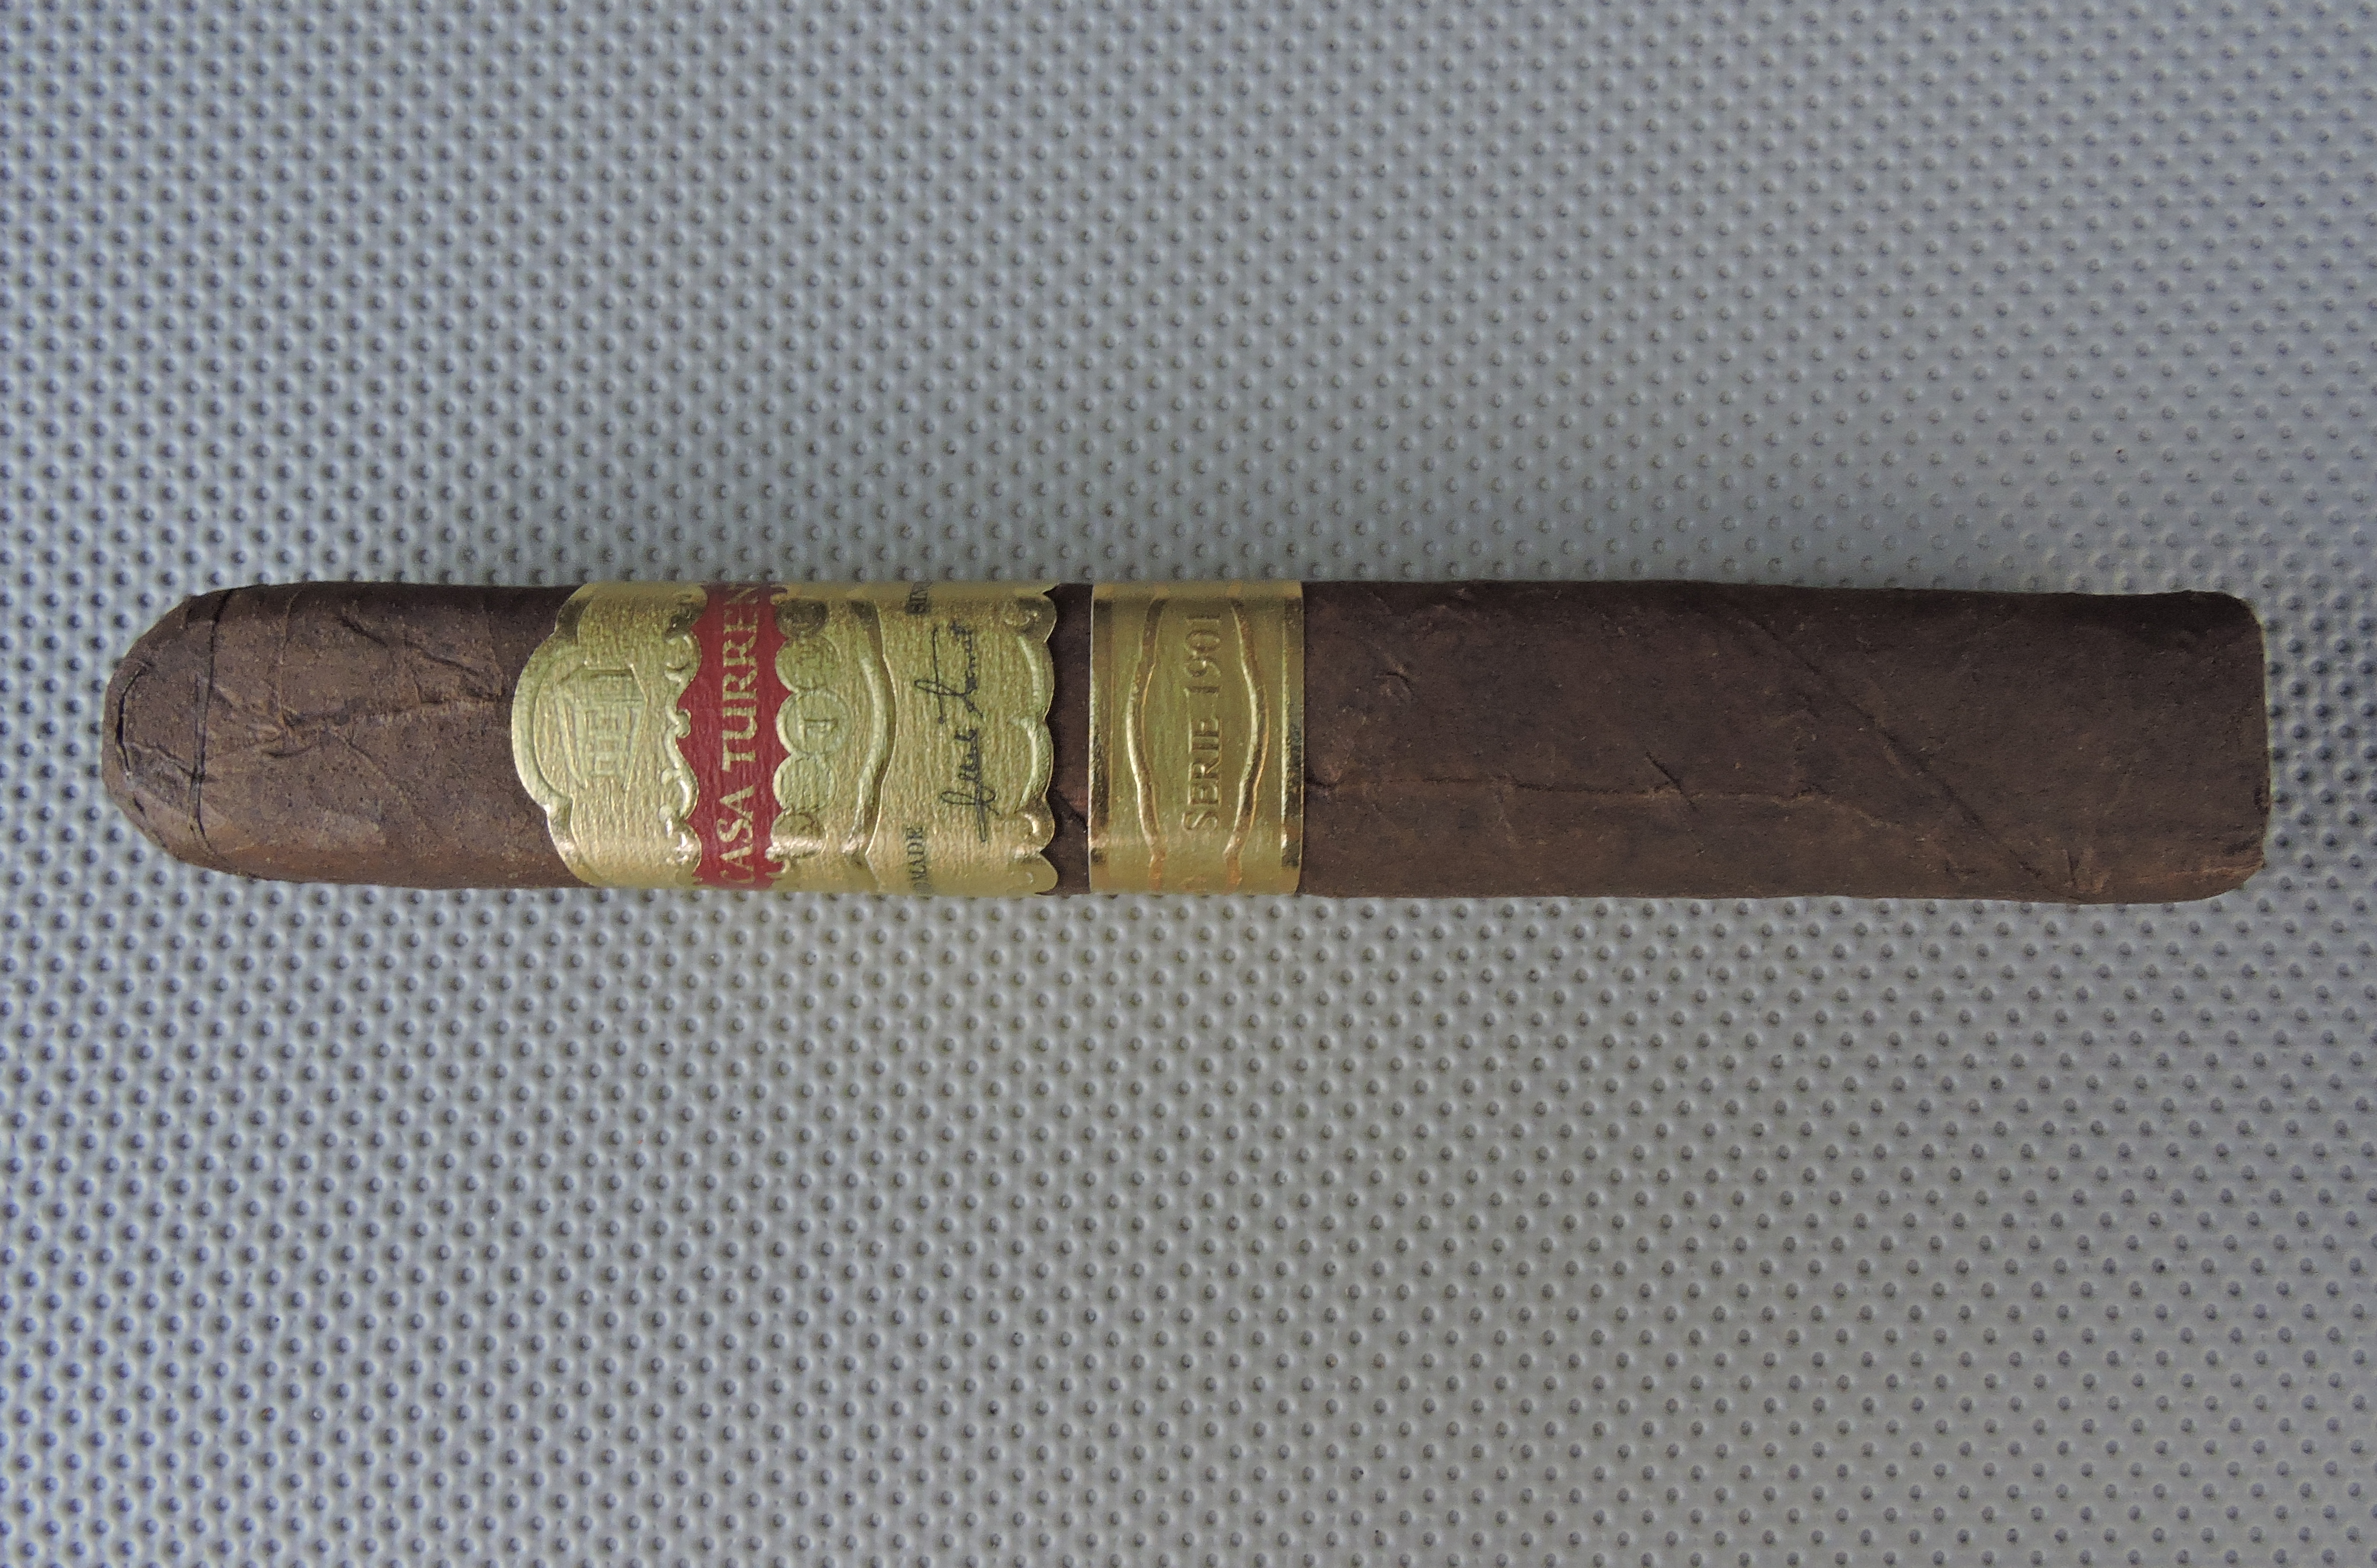 Casa_Turrent_Serie_1901_Gran_Robusto_by_A.Turrent_Cigars